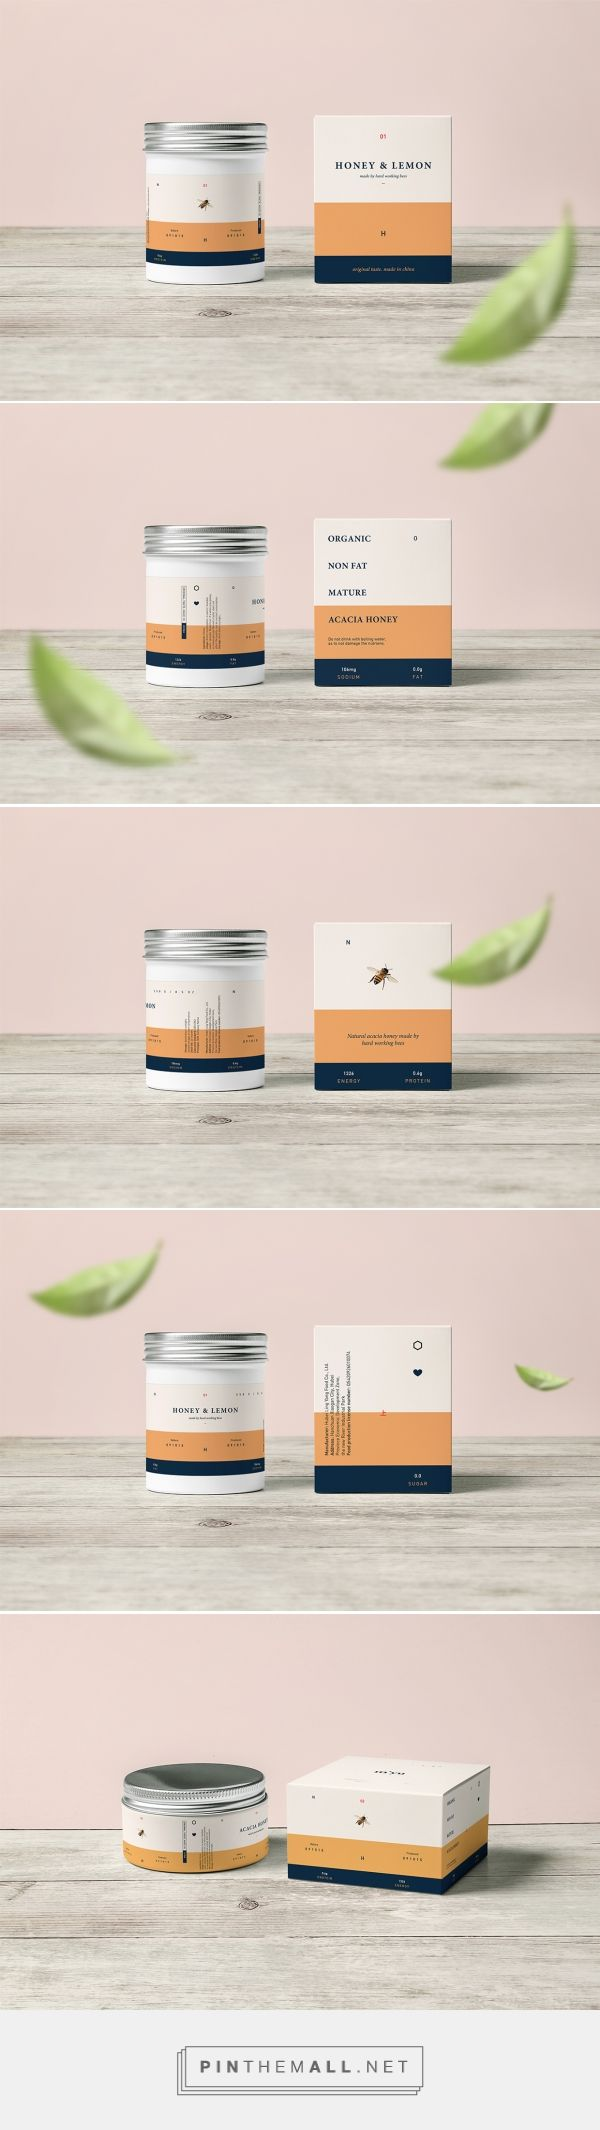 308 Best Tea Making Images On Pinterest Drinks Good Morning And Clear Complete Soft Care Sachet Shampo 1 Gtg Myiu Packaging Design